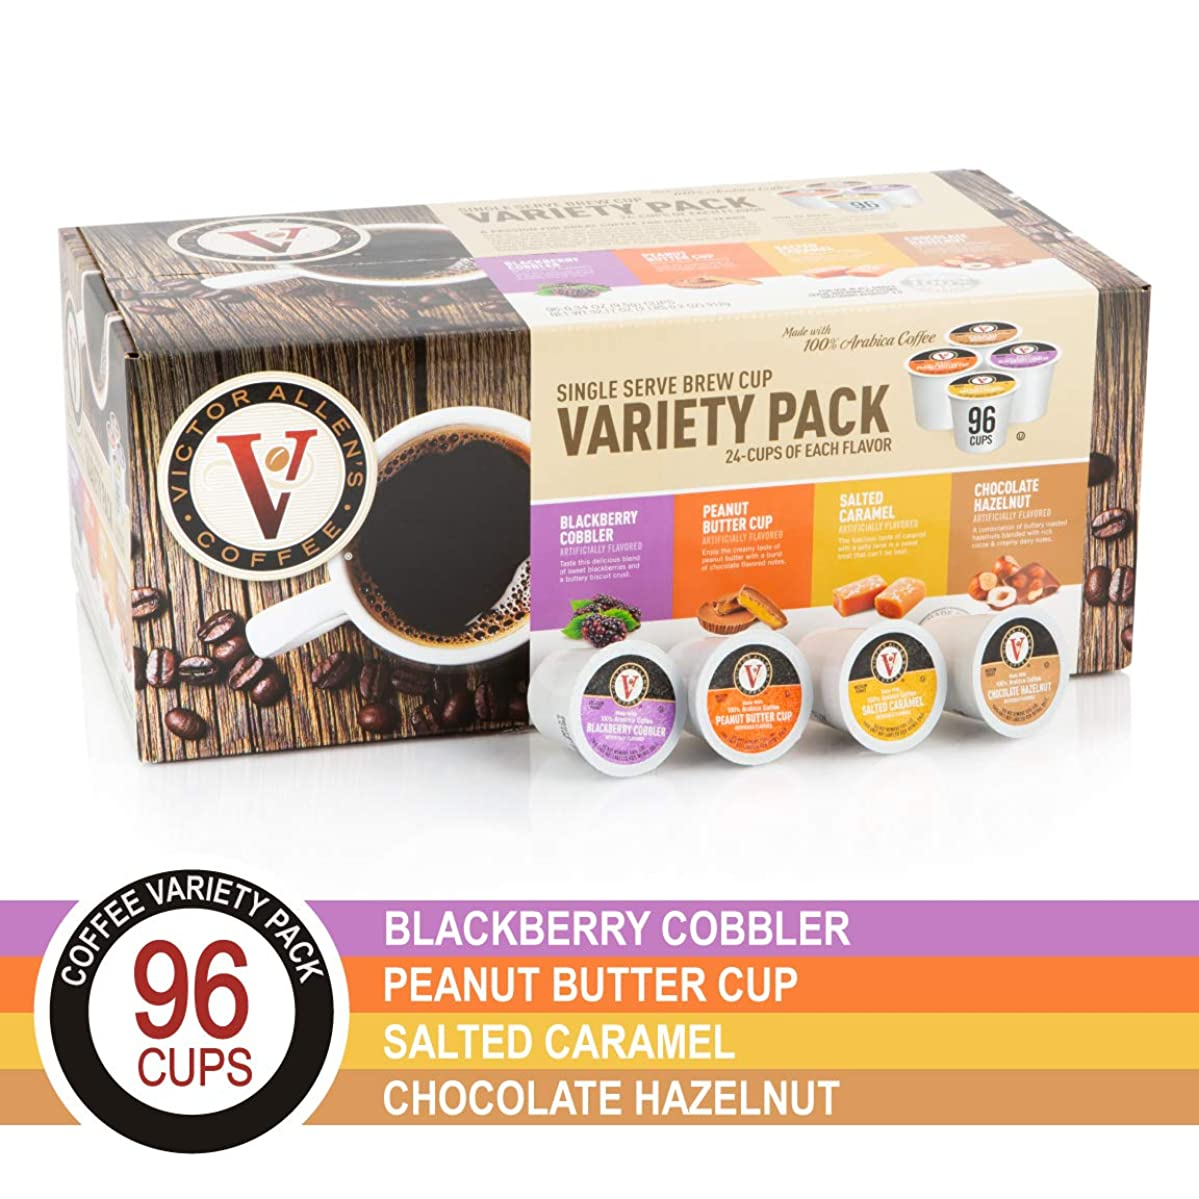 Peanut Butter Cup, Salted Caramel, Blackberry Cobbler, and Chocolate Hazelnut Variety Pack for K-Cup, Keurig 2.0 Brewers, 96 Count Victor Allen's Coffee Single Serve Coffee Pods